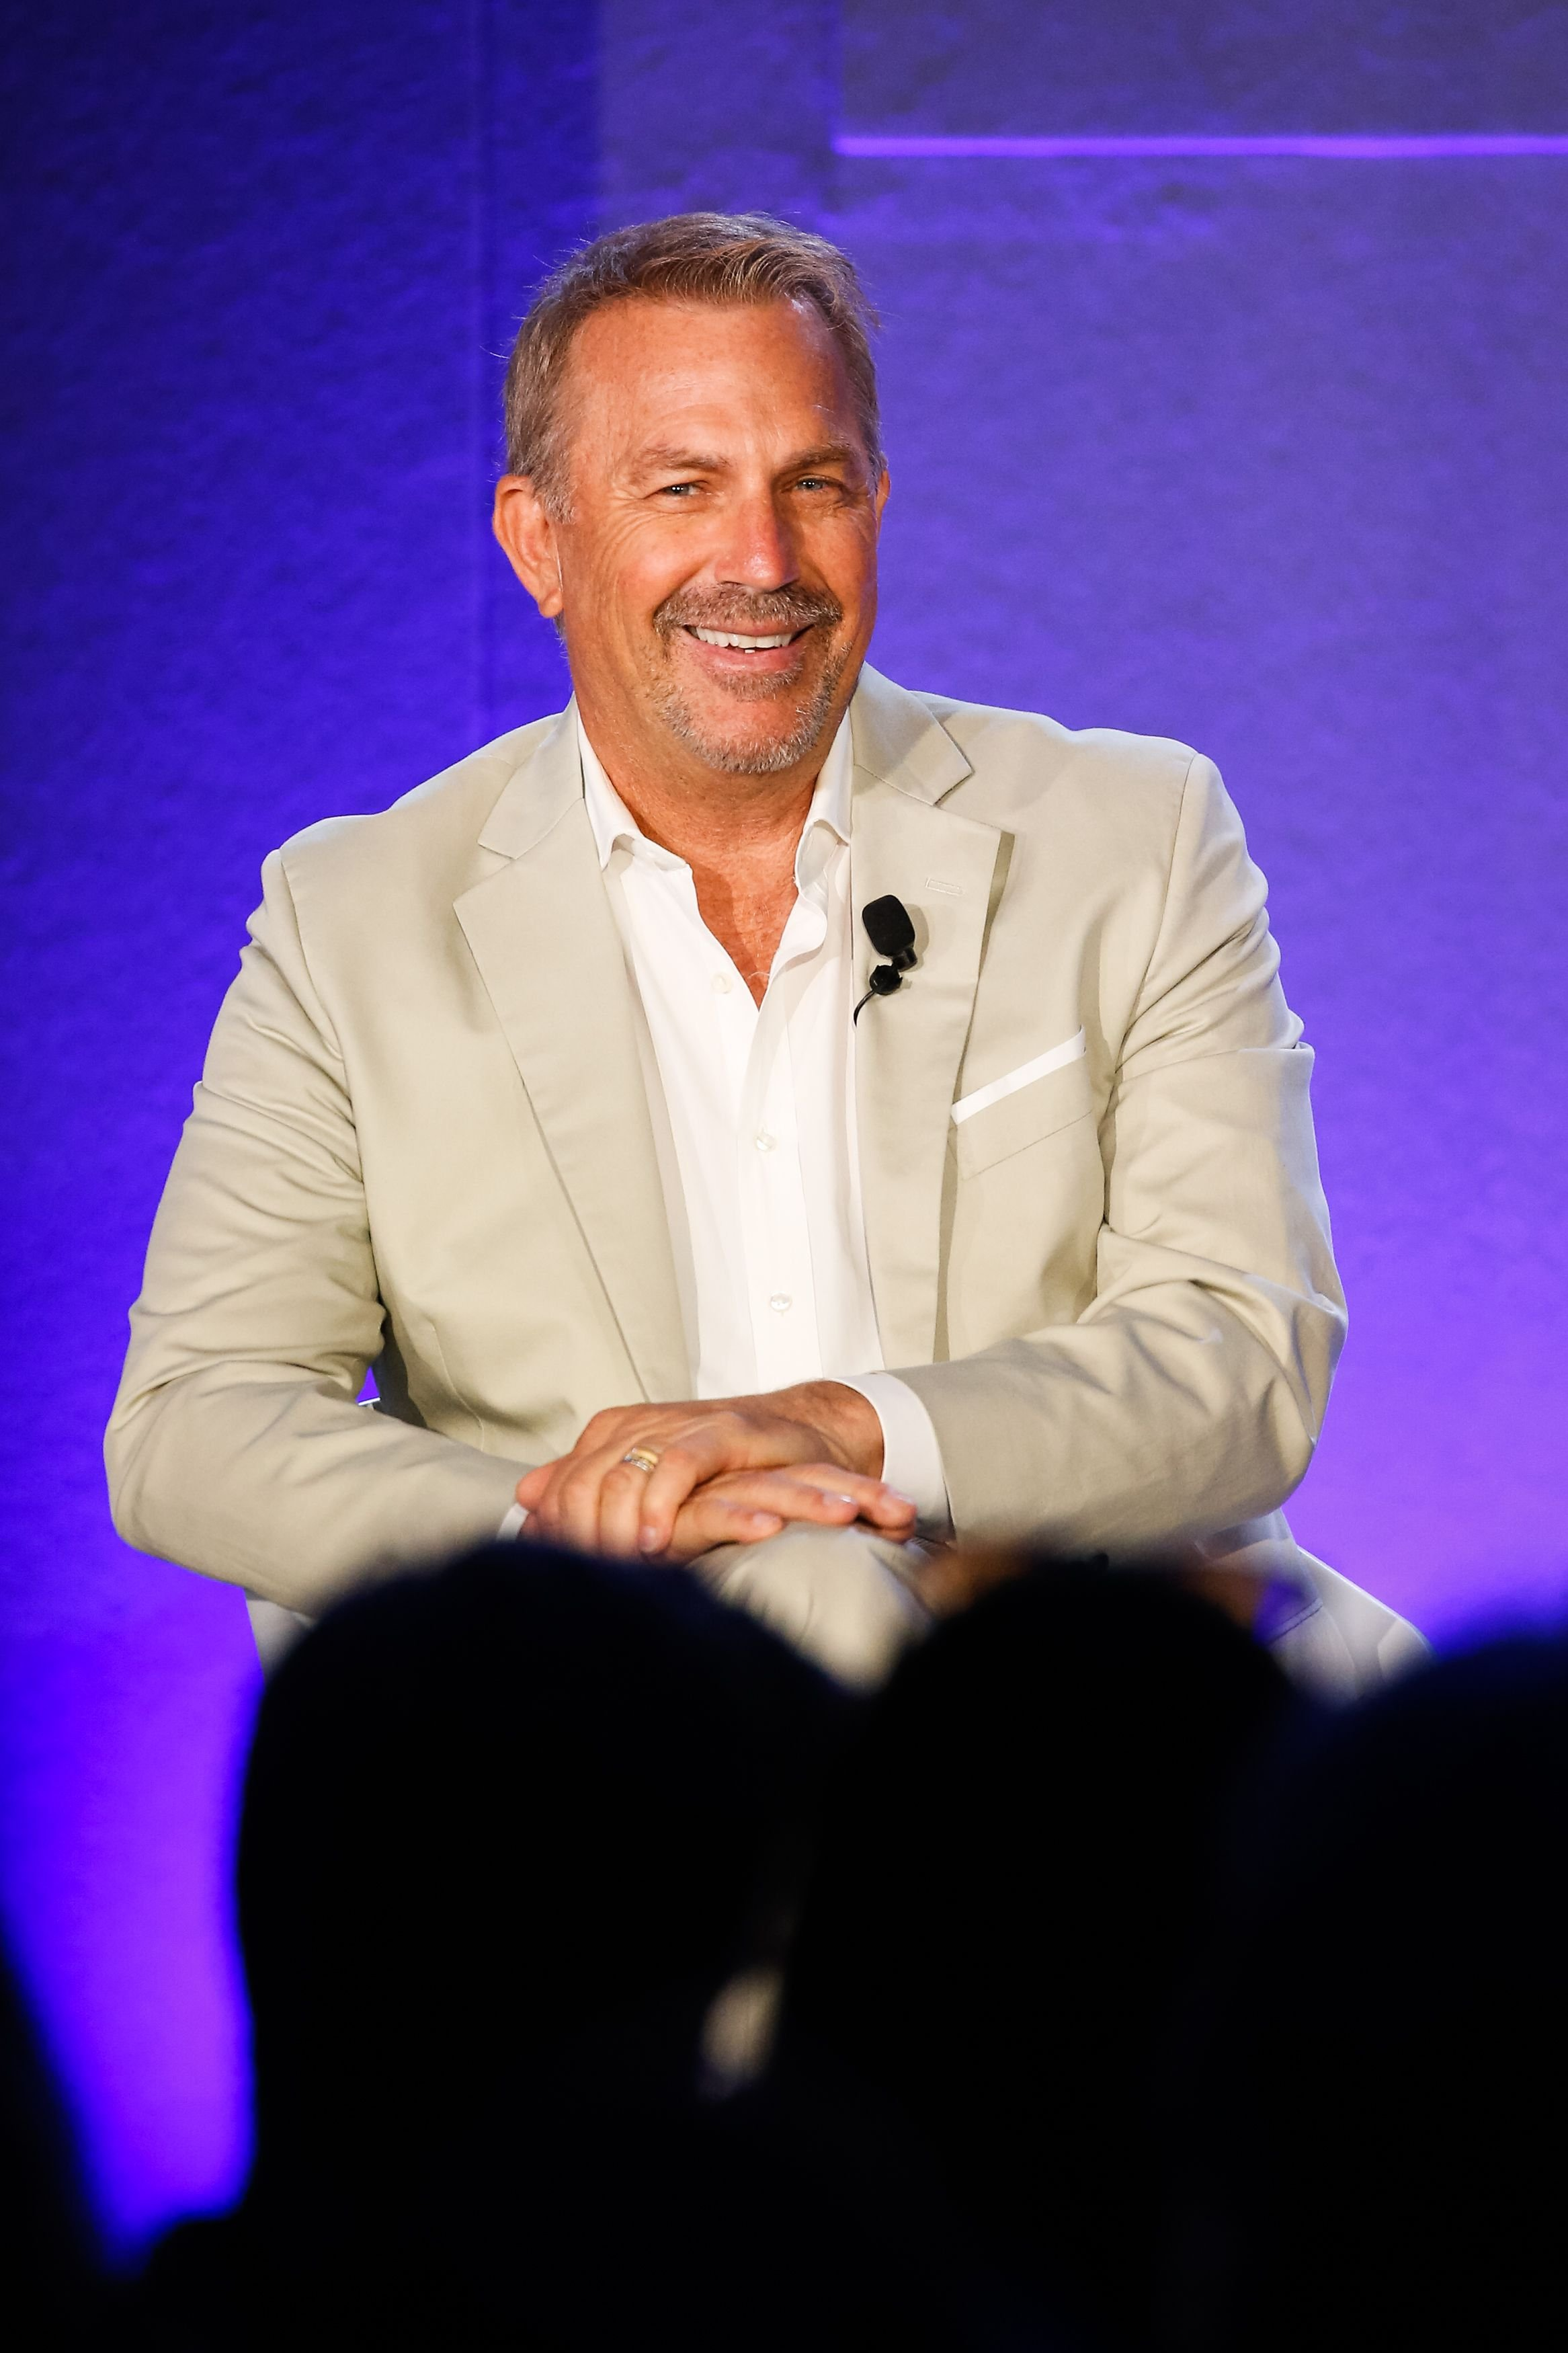 Kevin Costner during the Cannes Lions Festival 2018 on June 21, 2018 | Photo: Getty Images